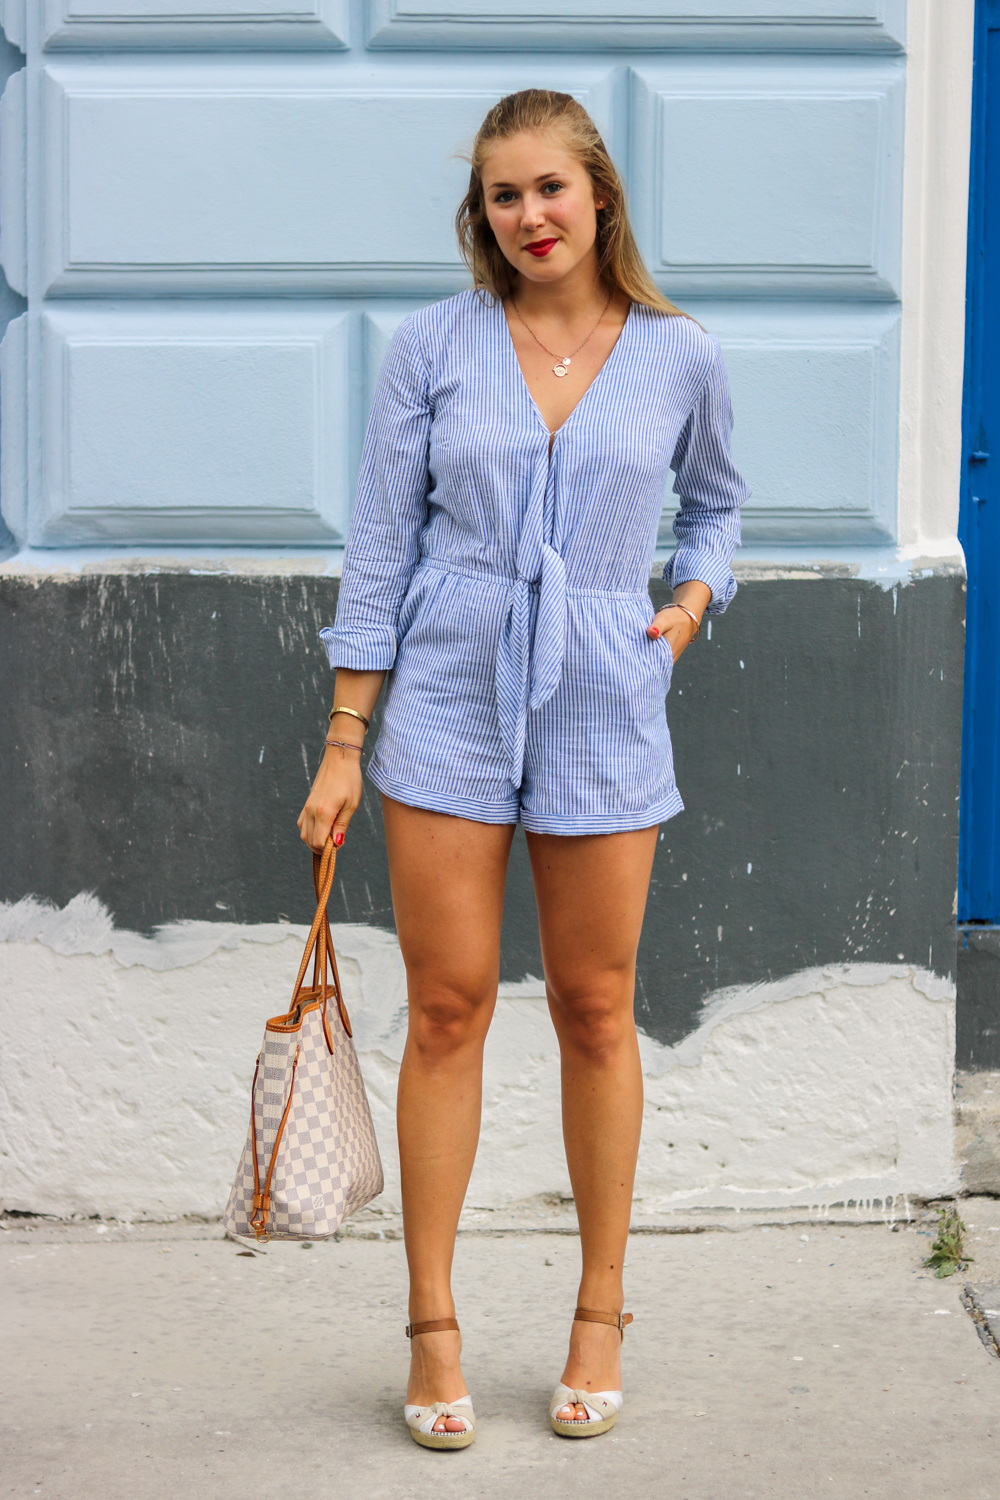 BLOG YOUR STYLE: French Rivera